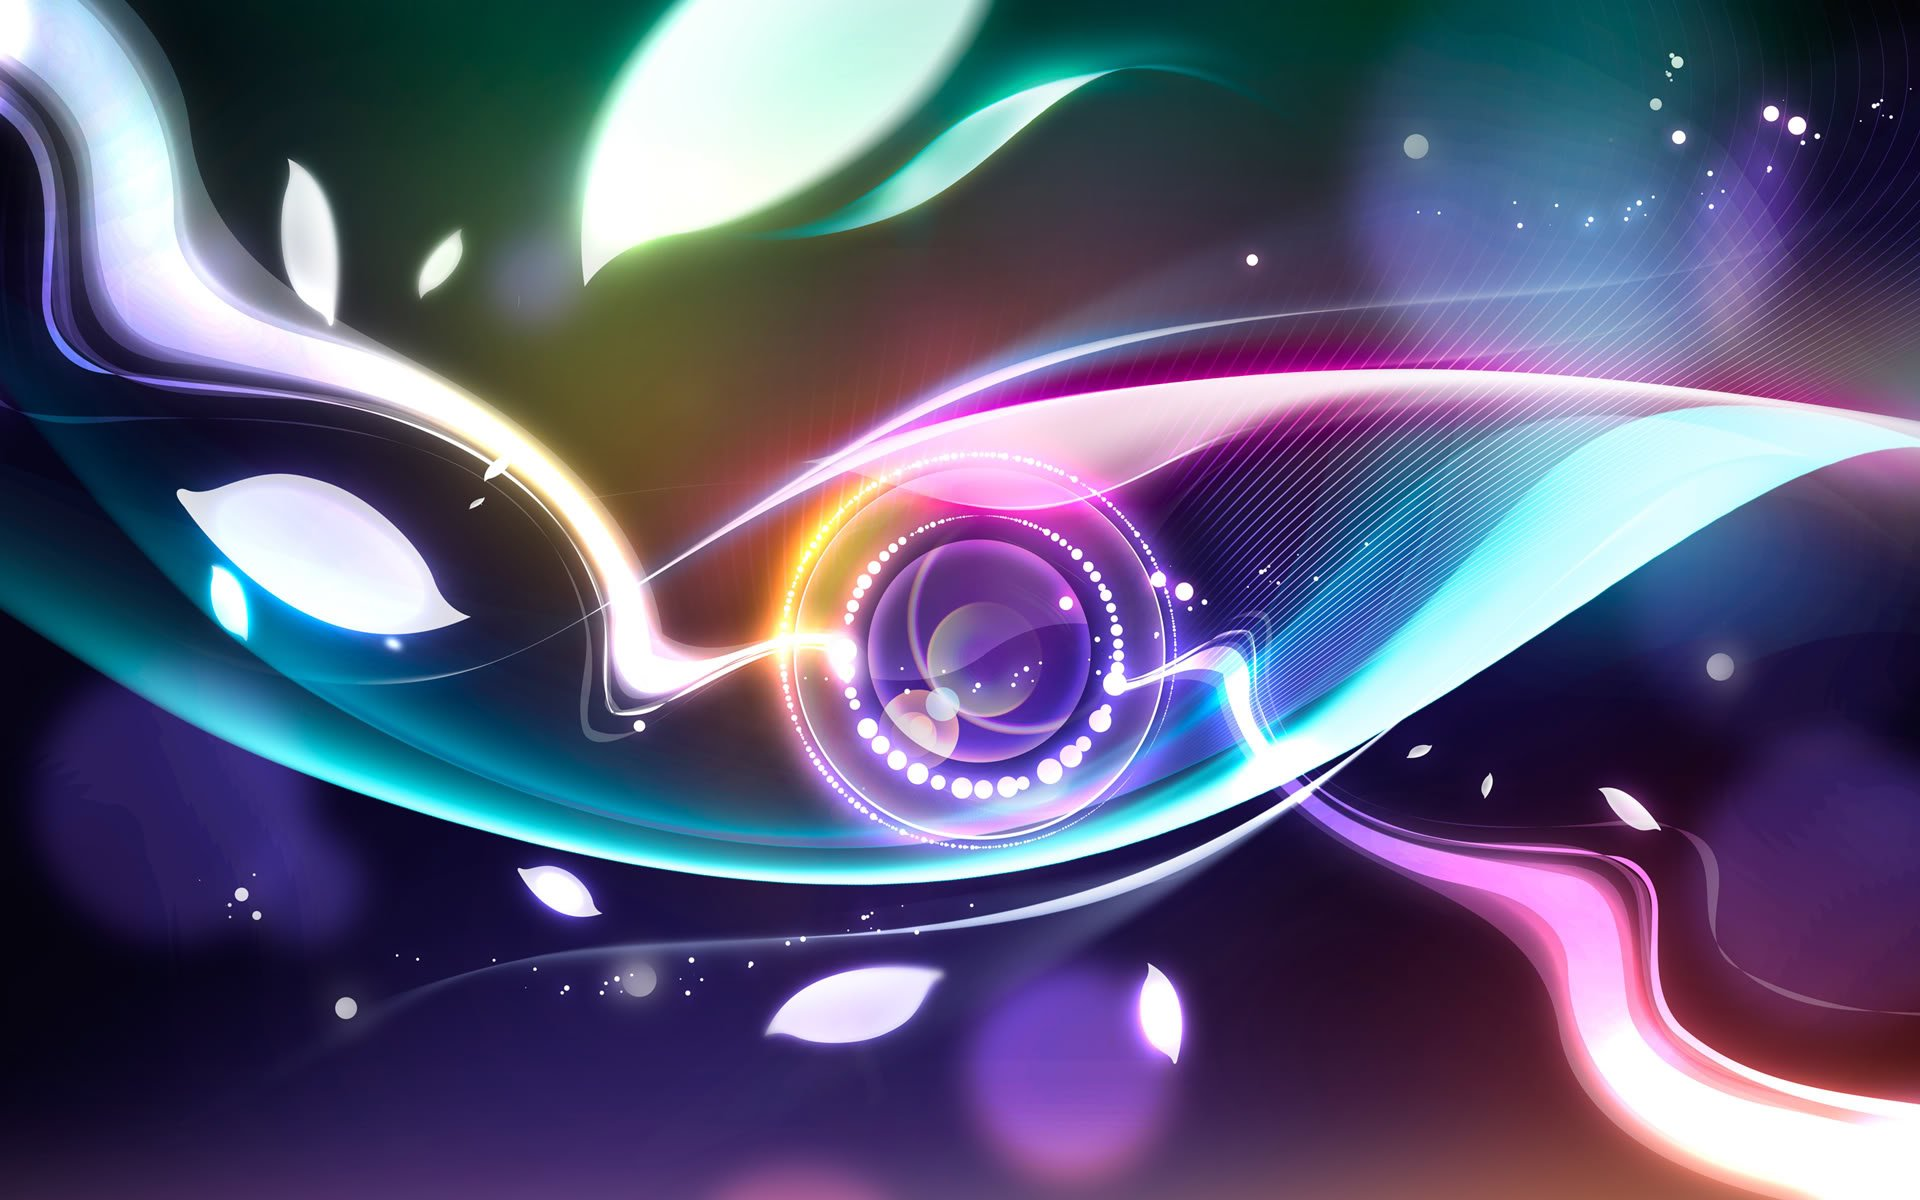 Wallpaper Electro House Full Hd Posted By Ethan Johnson